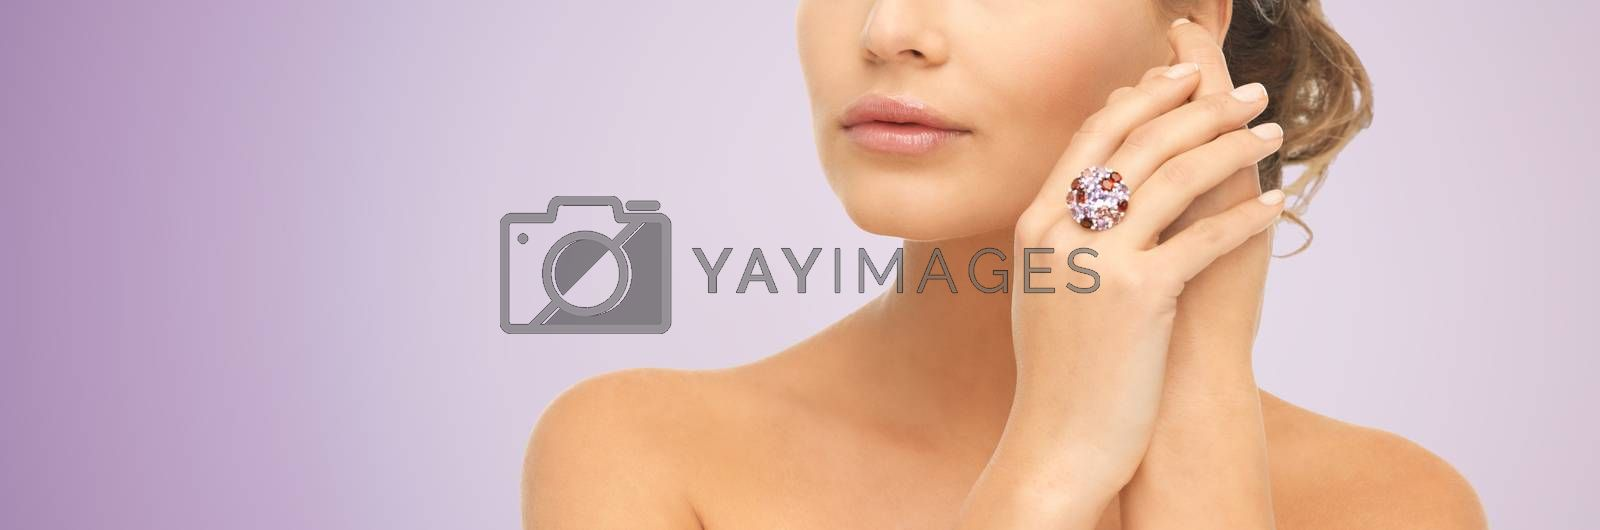 beauty, jewelry, people and accessories concept - close up of woman with cocktail ring on hand over violet background